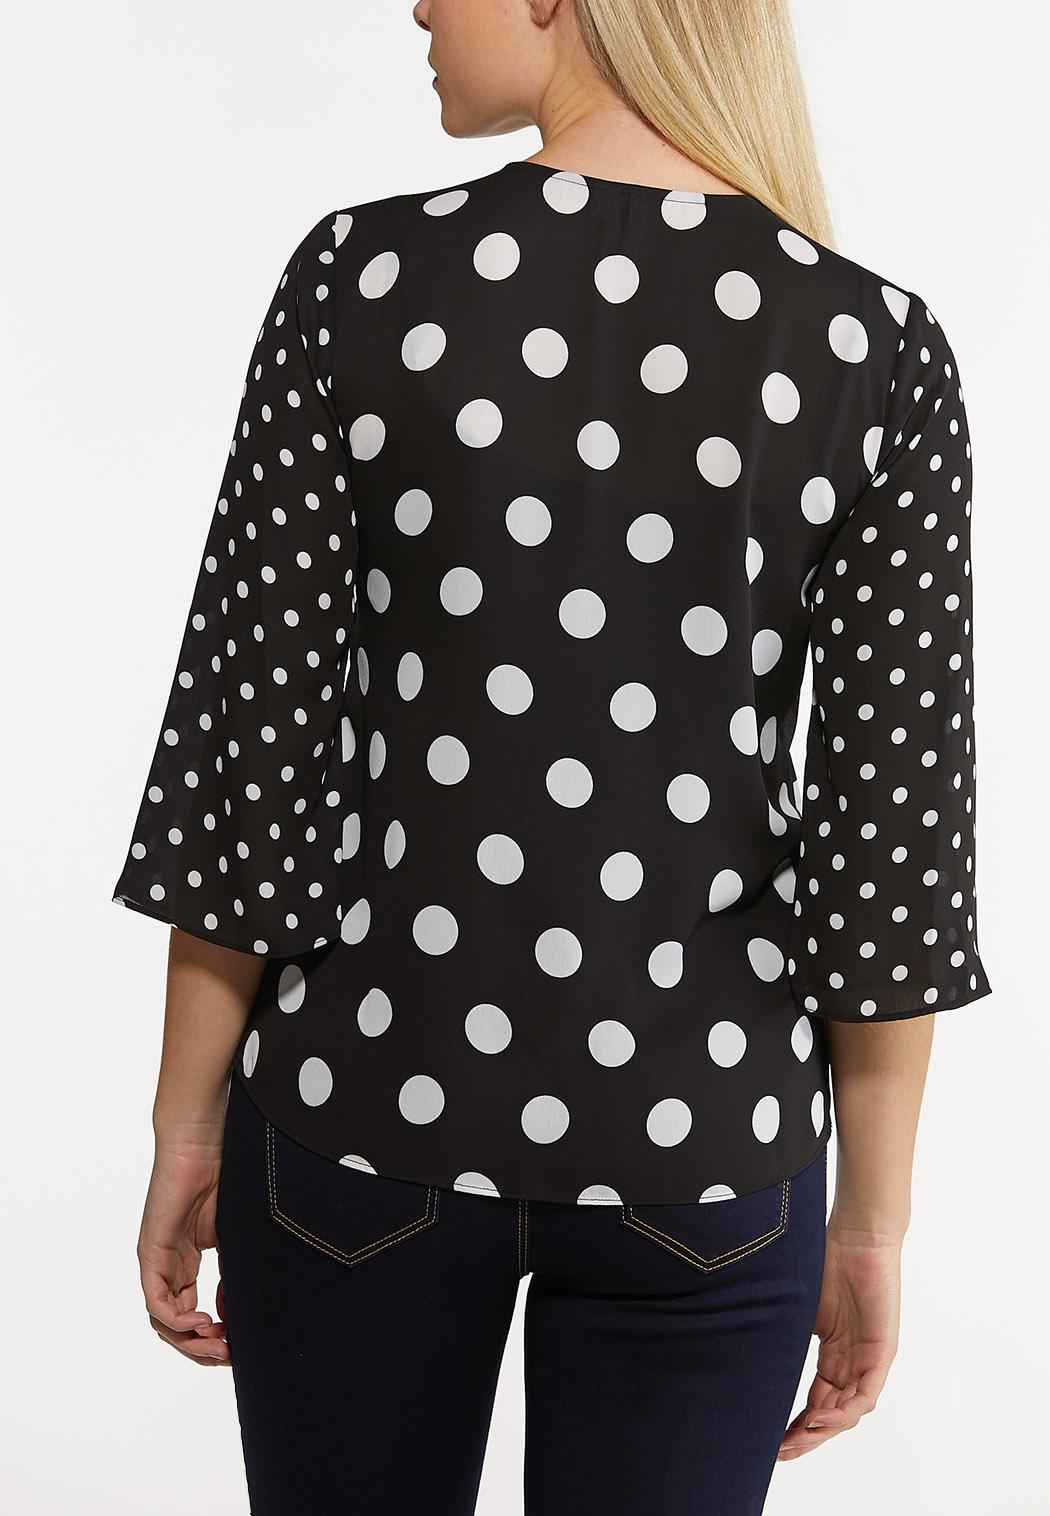 Black And White Polka Dot Shirt (Item #44186561)